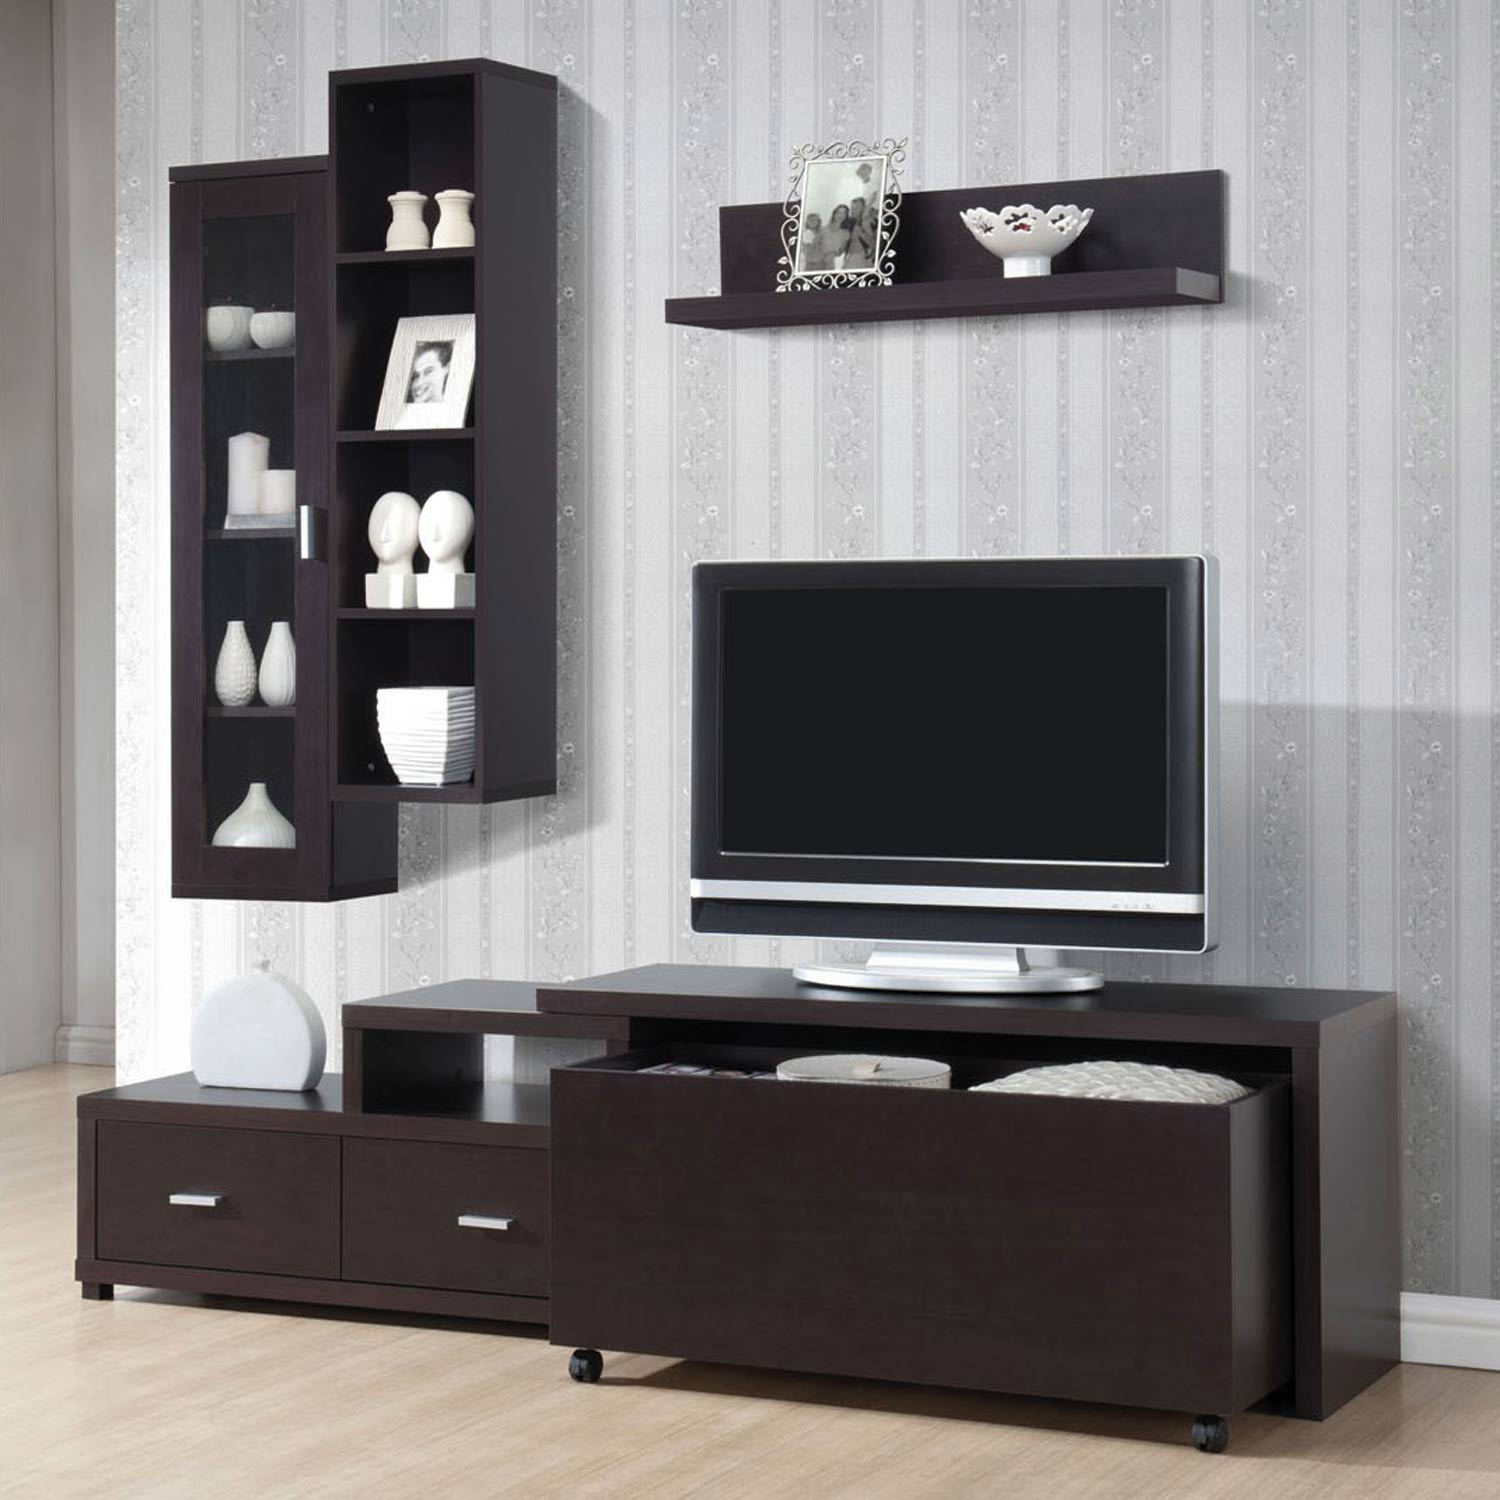 Sal n bali completo wengue muebles baratos online for Muebles salon completo